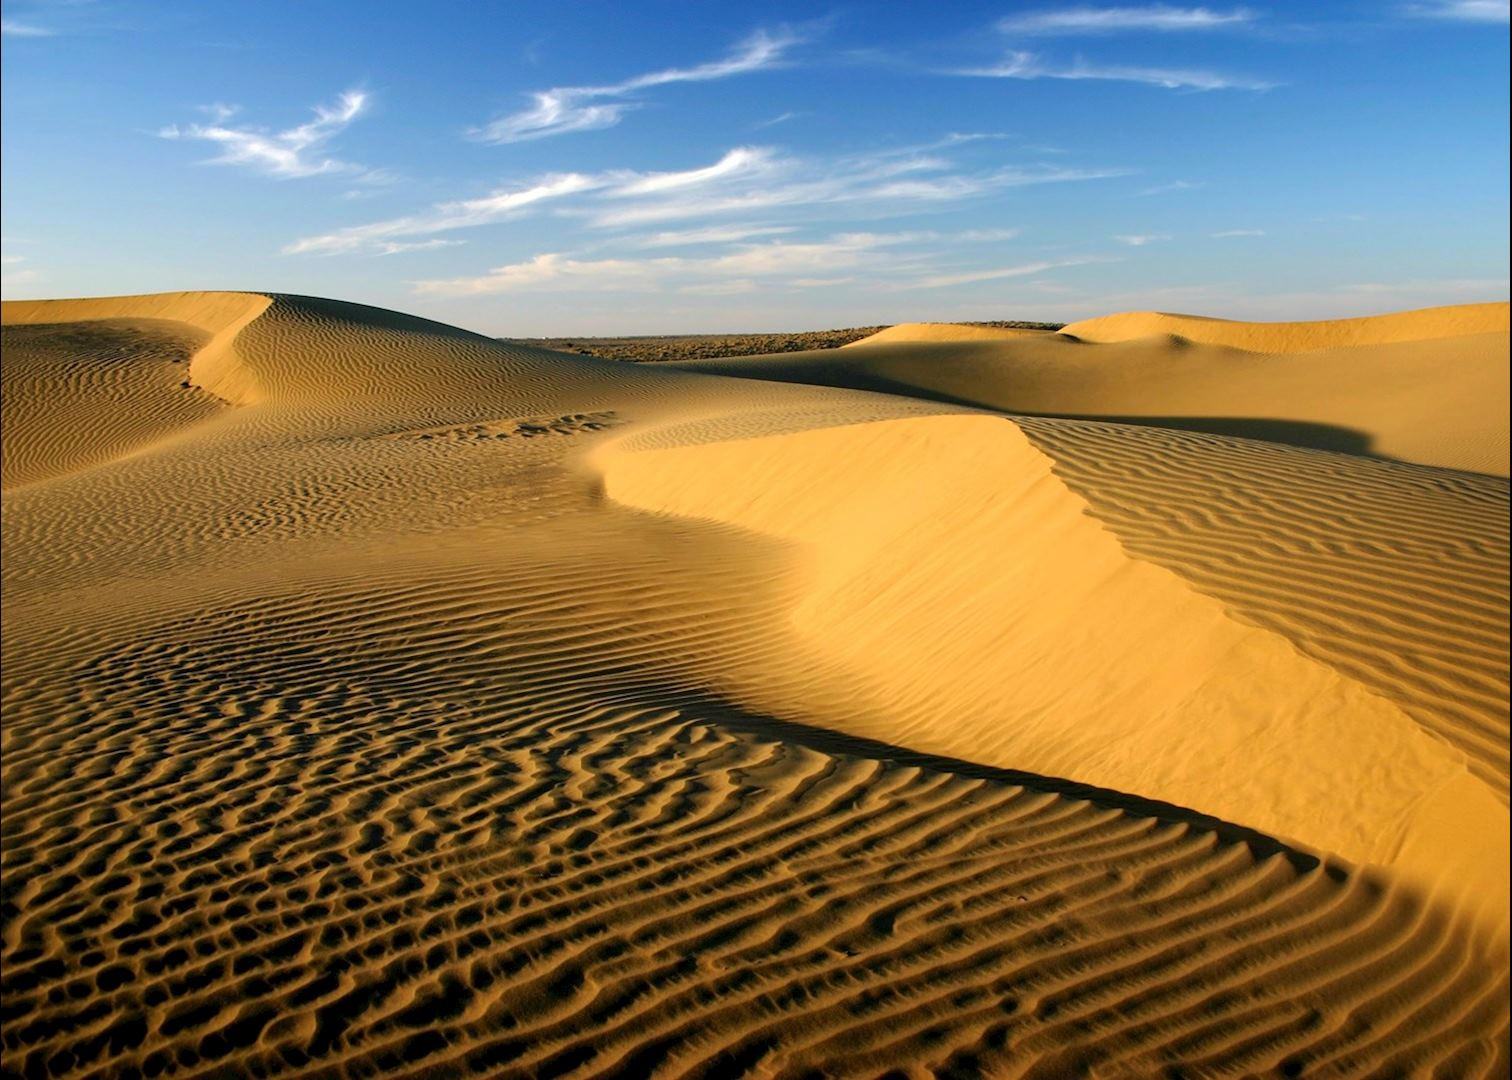 The Eastern Desert is the part of the Sahara desert that is located east of the Nile river between the river and the Red Sea It extends from Egypt in the north to